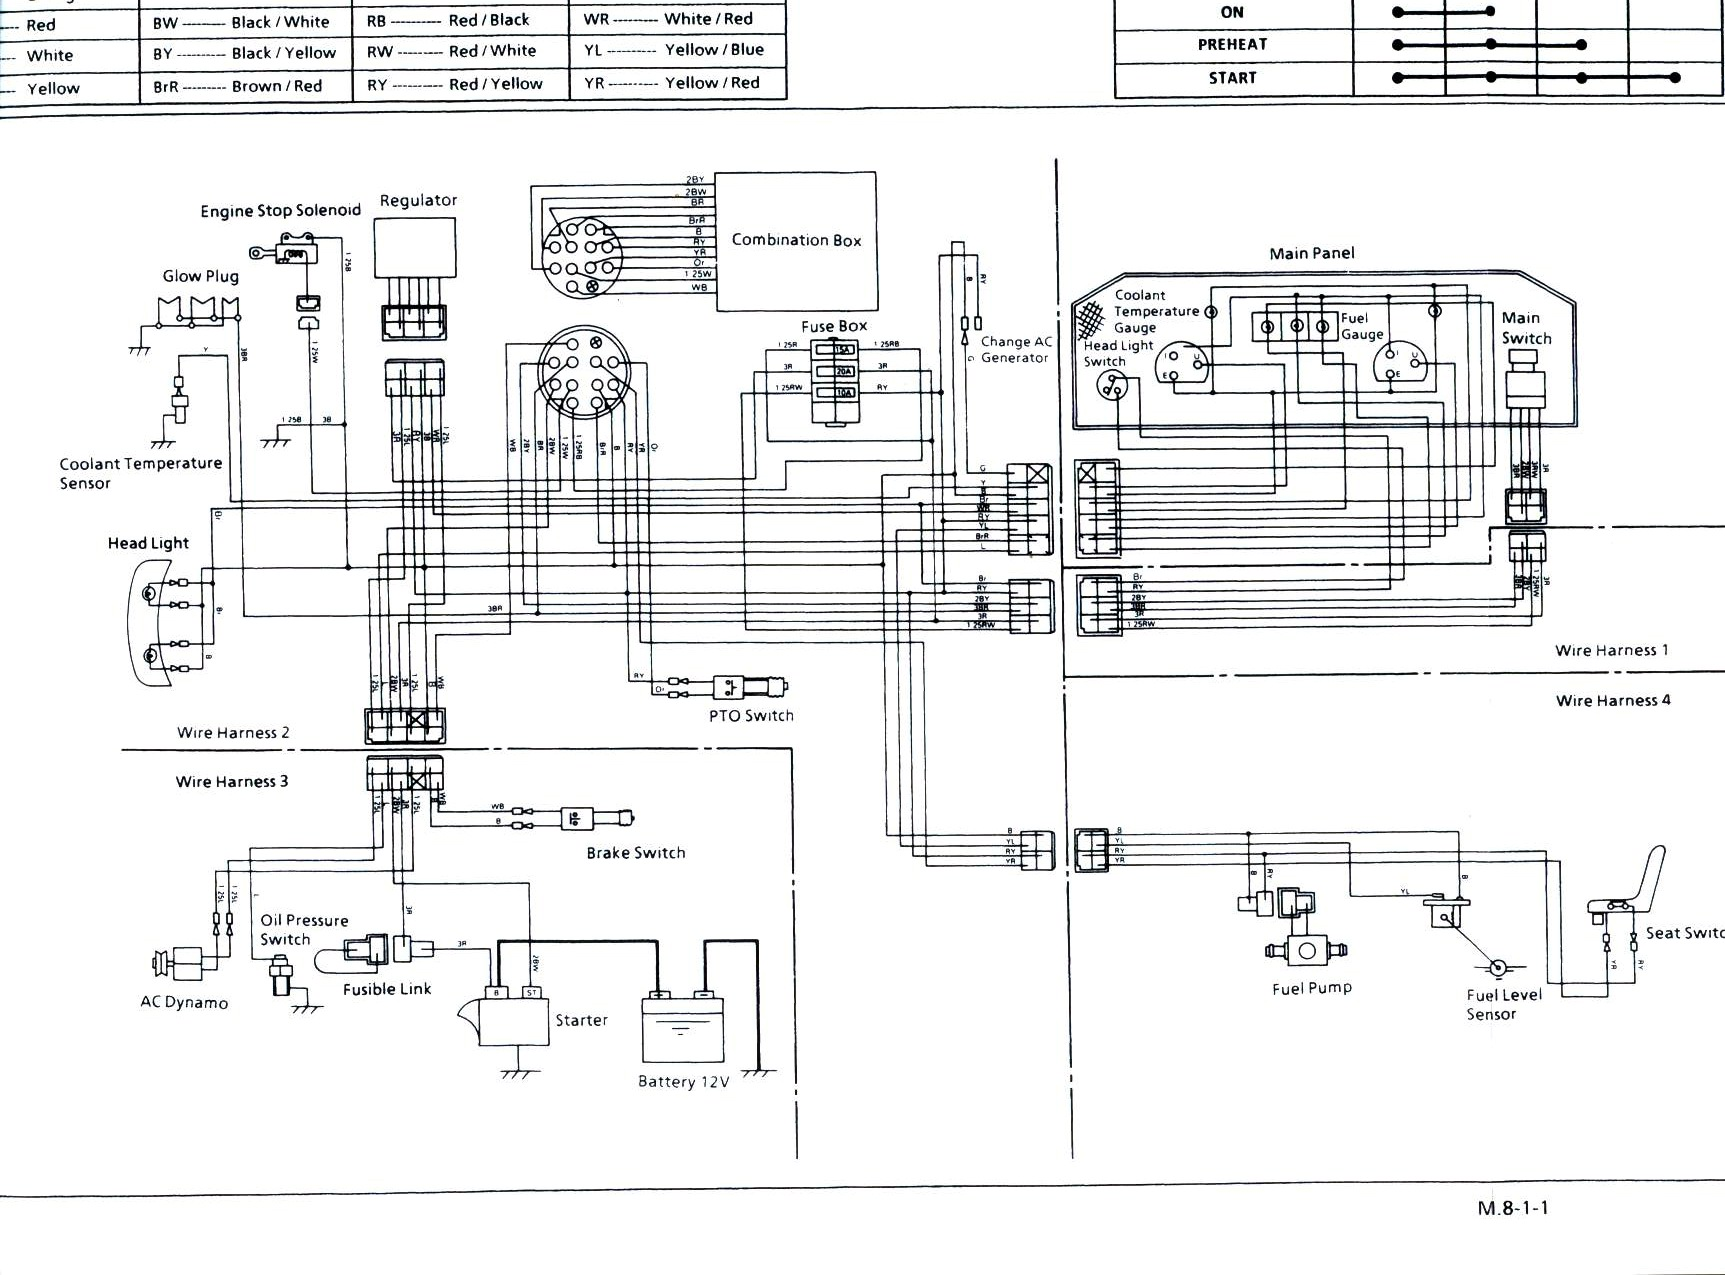 saxon ship diagram all about repair and wiring collections saxon ship diagram kubota wiring diagrams l245dt jodebalattachment kubota wiring diagrams l245dtphp saxon ship